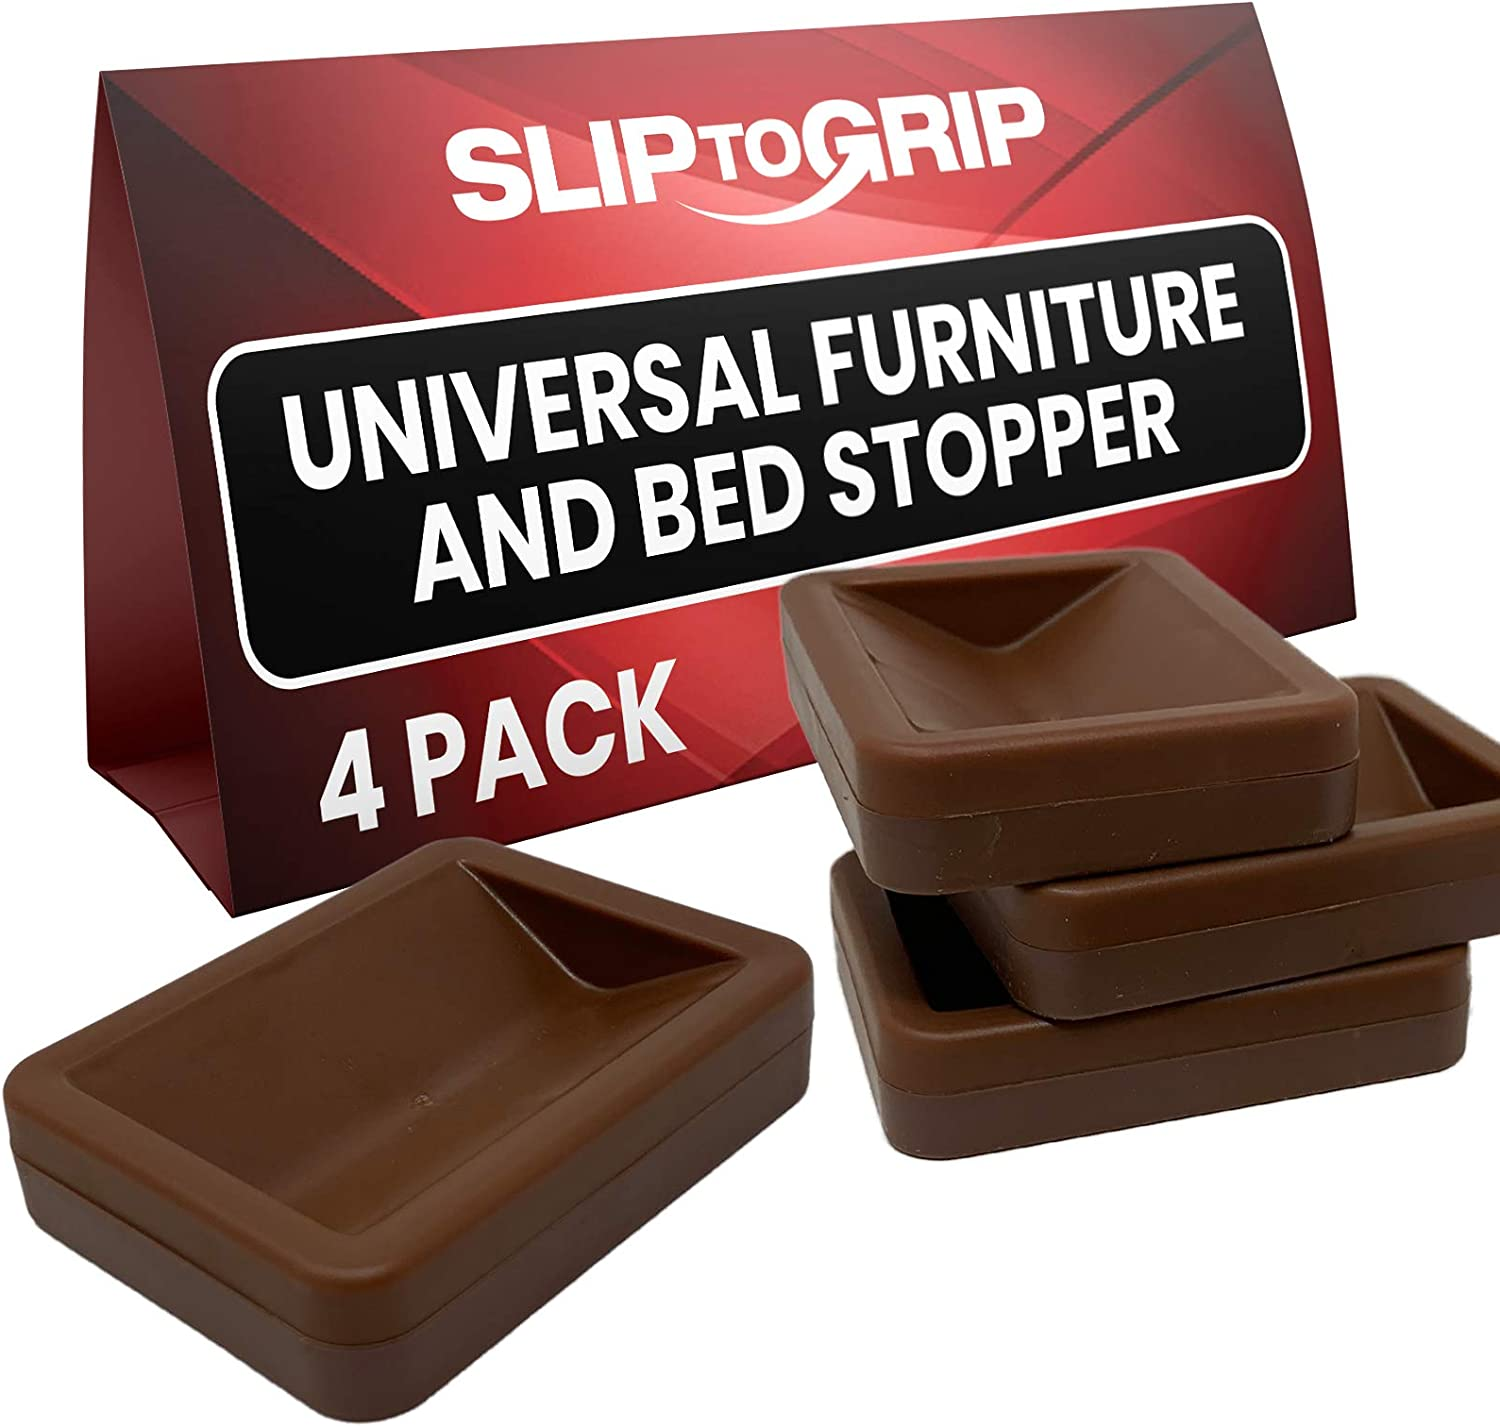 SlipToGrip Bed and Furniture Stopper (4, Brown)